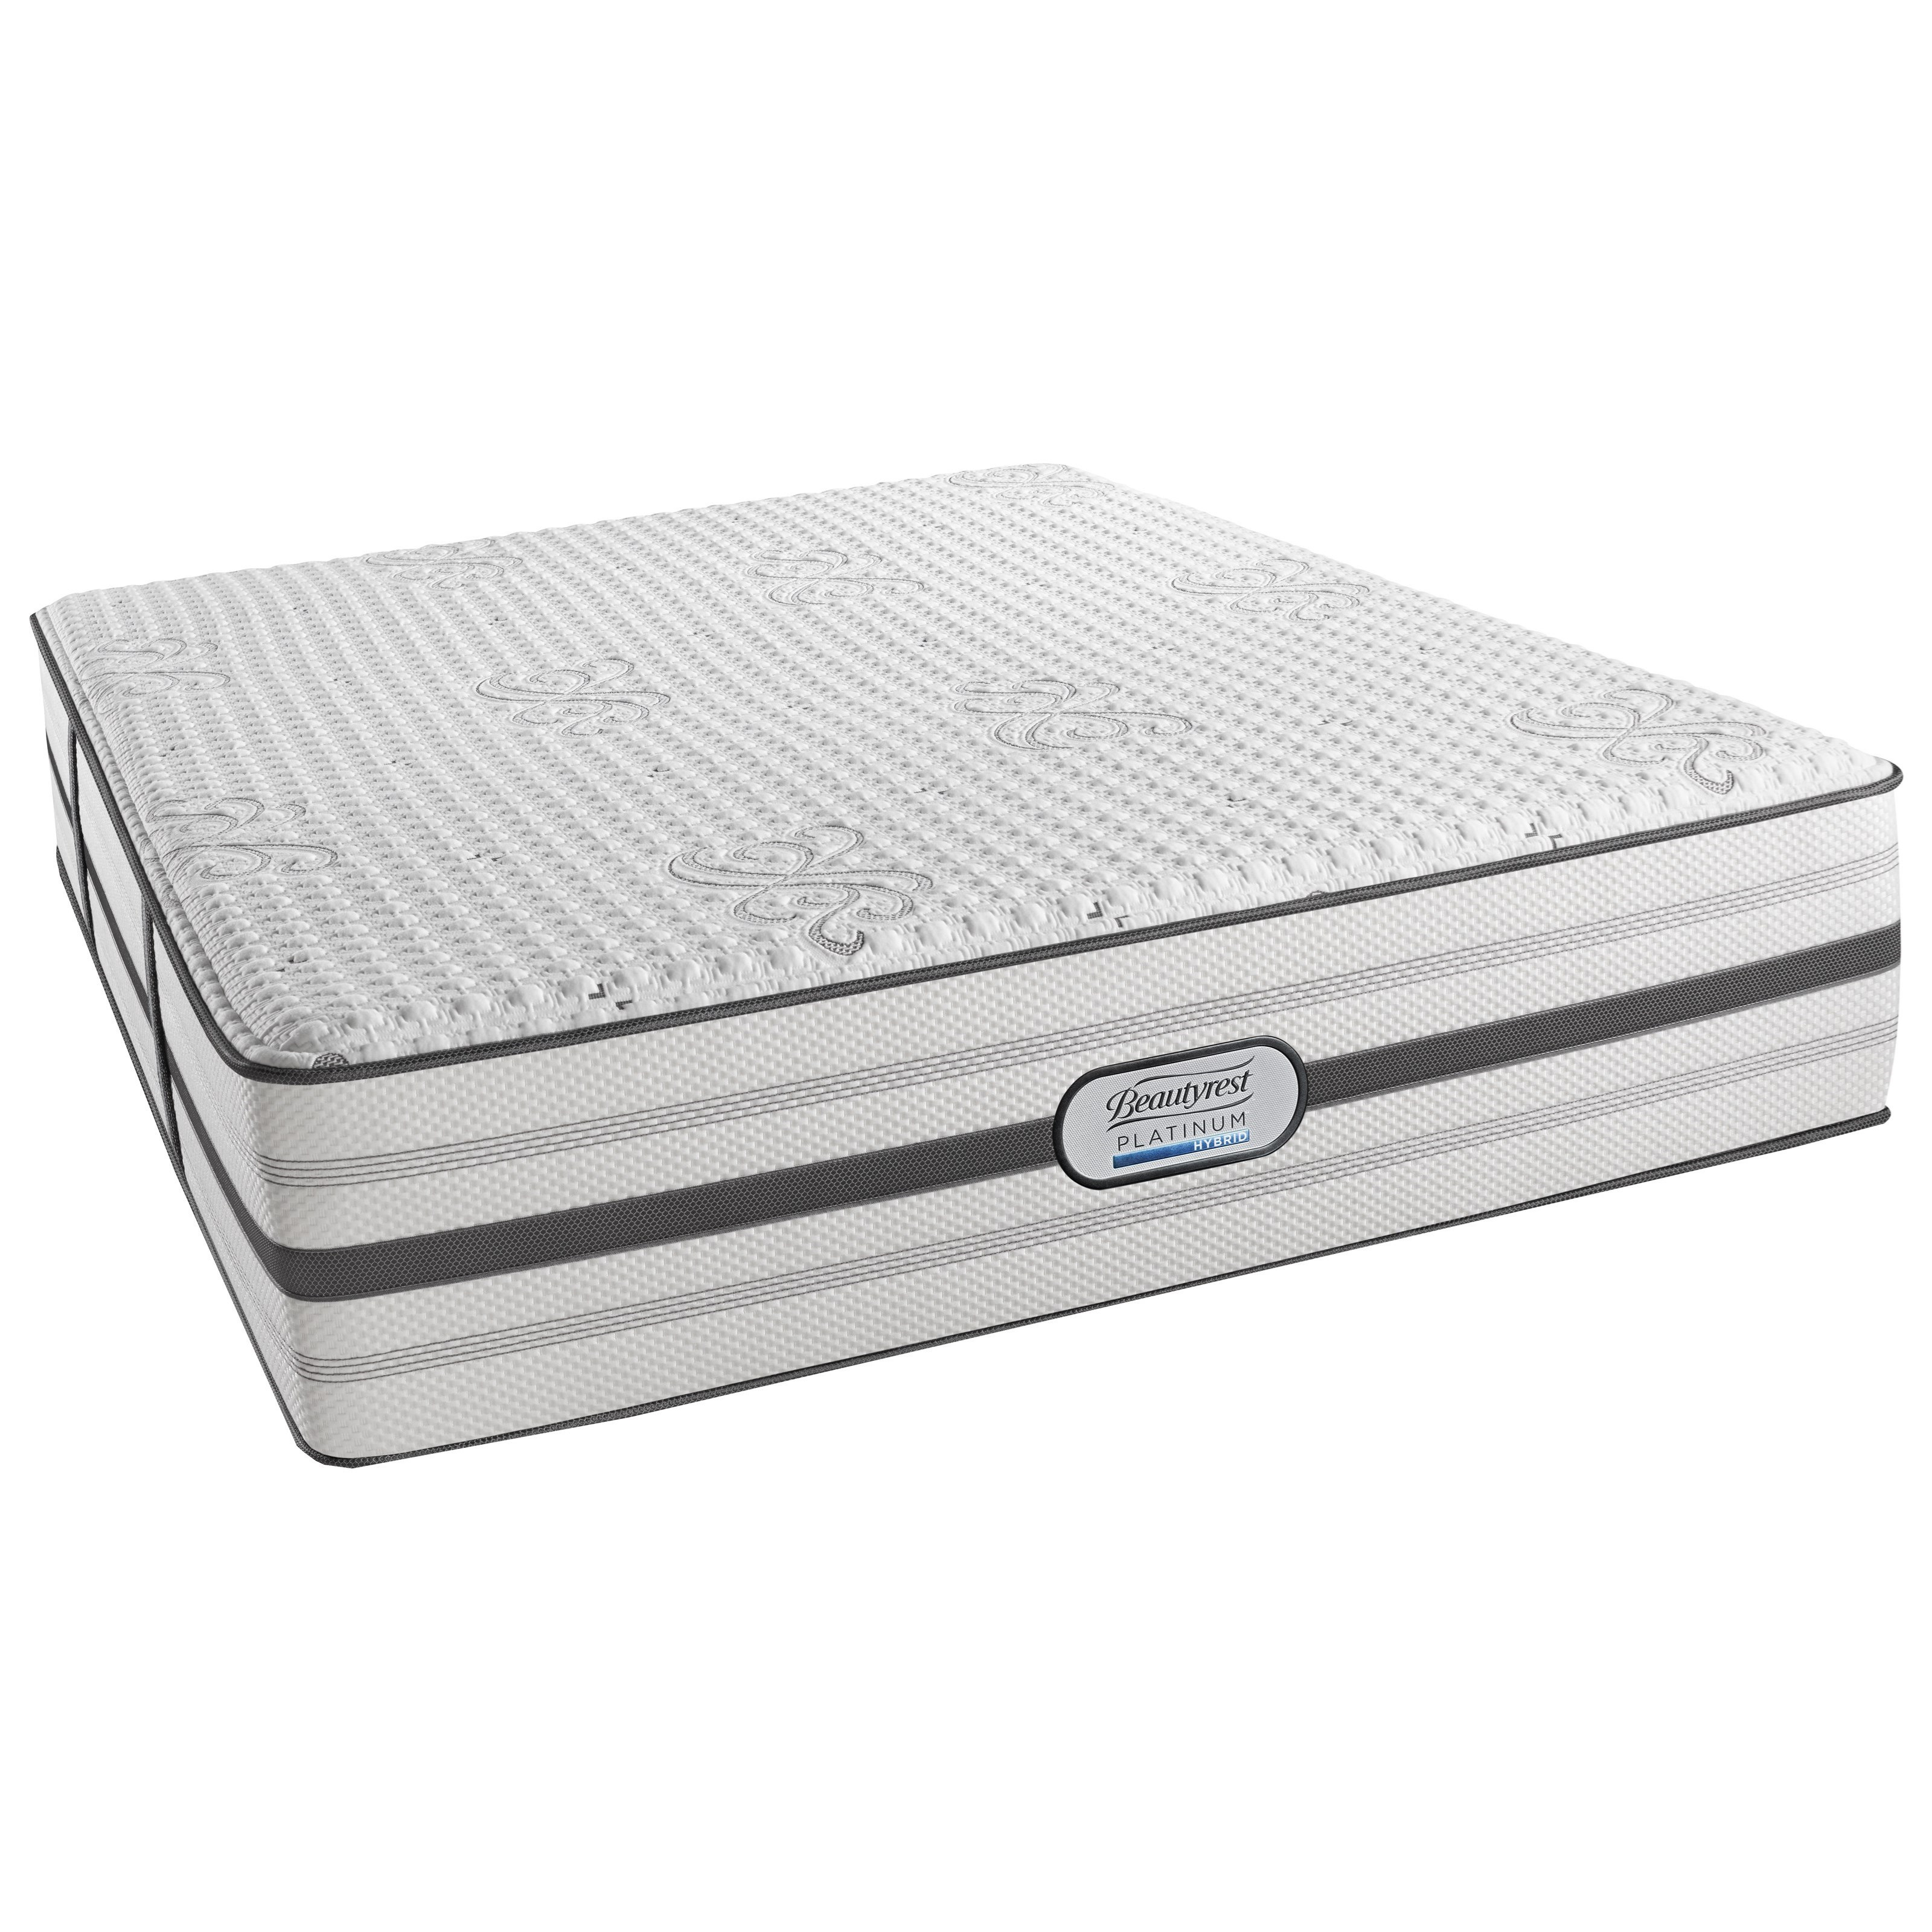 Beautyrest Platinum Austin Twin XL Luxury Firm Mattress - Item Number: BRHLV1LF-TXL